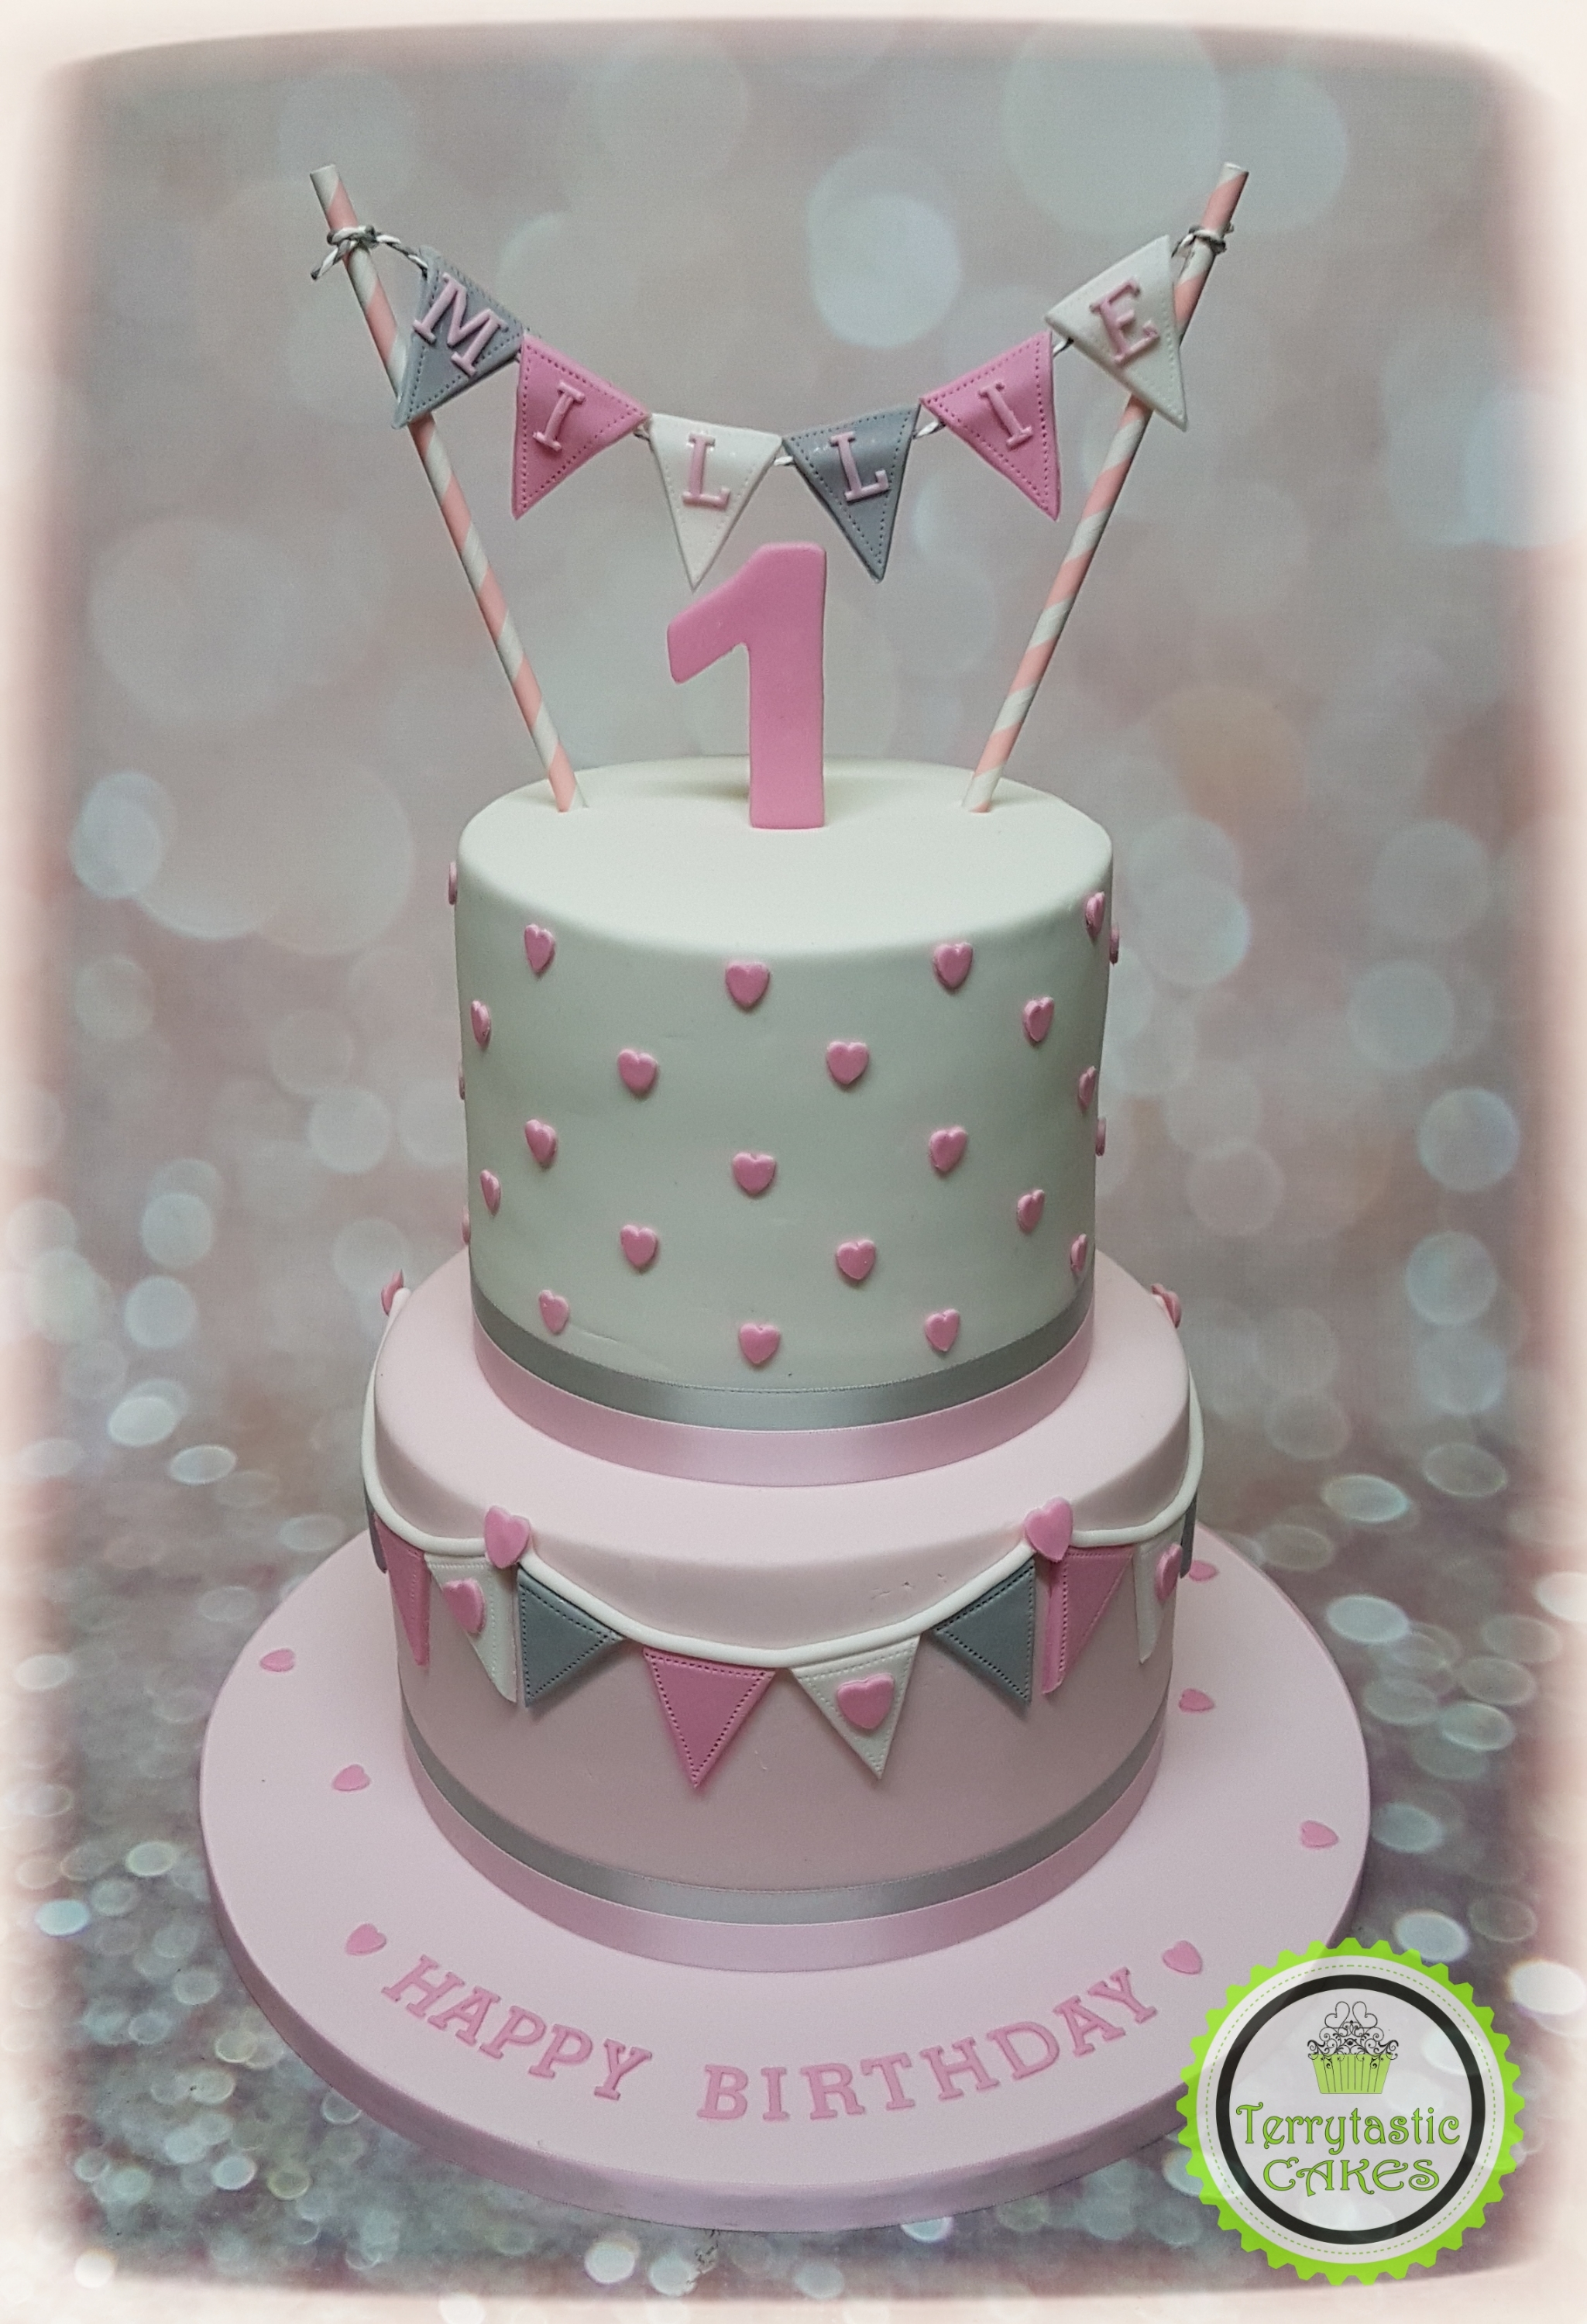 Fantastic Pink Grey Bunting 1St Birthday Cake Girl Terrytastic Cakes Funny Birthday Cards Online Barepcheapnameinfo